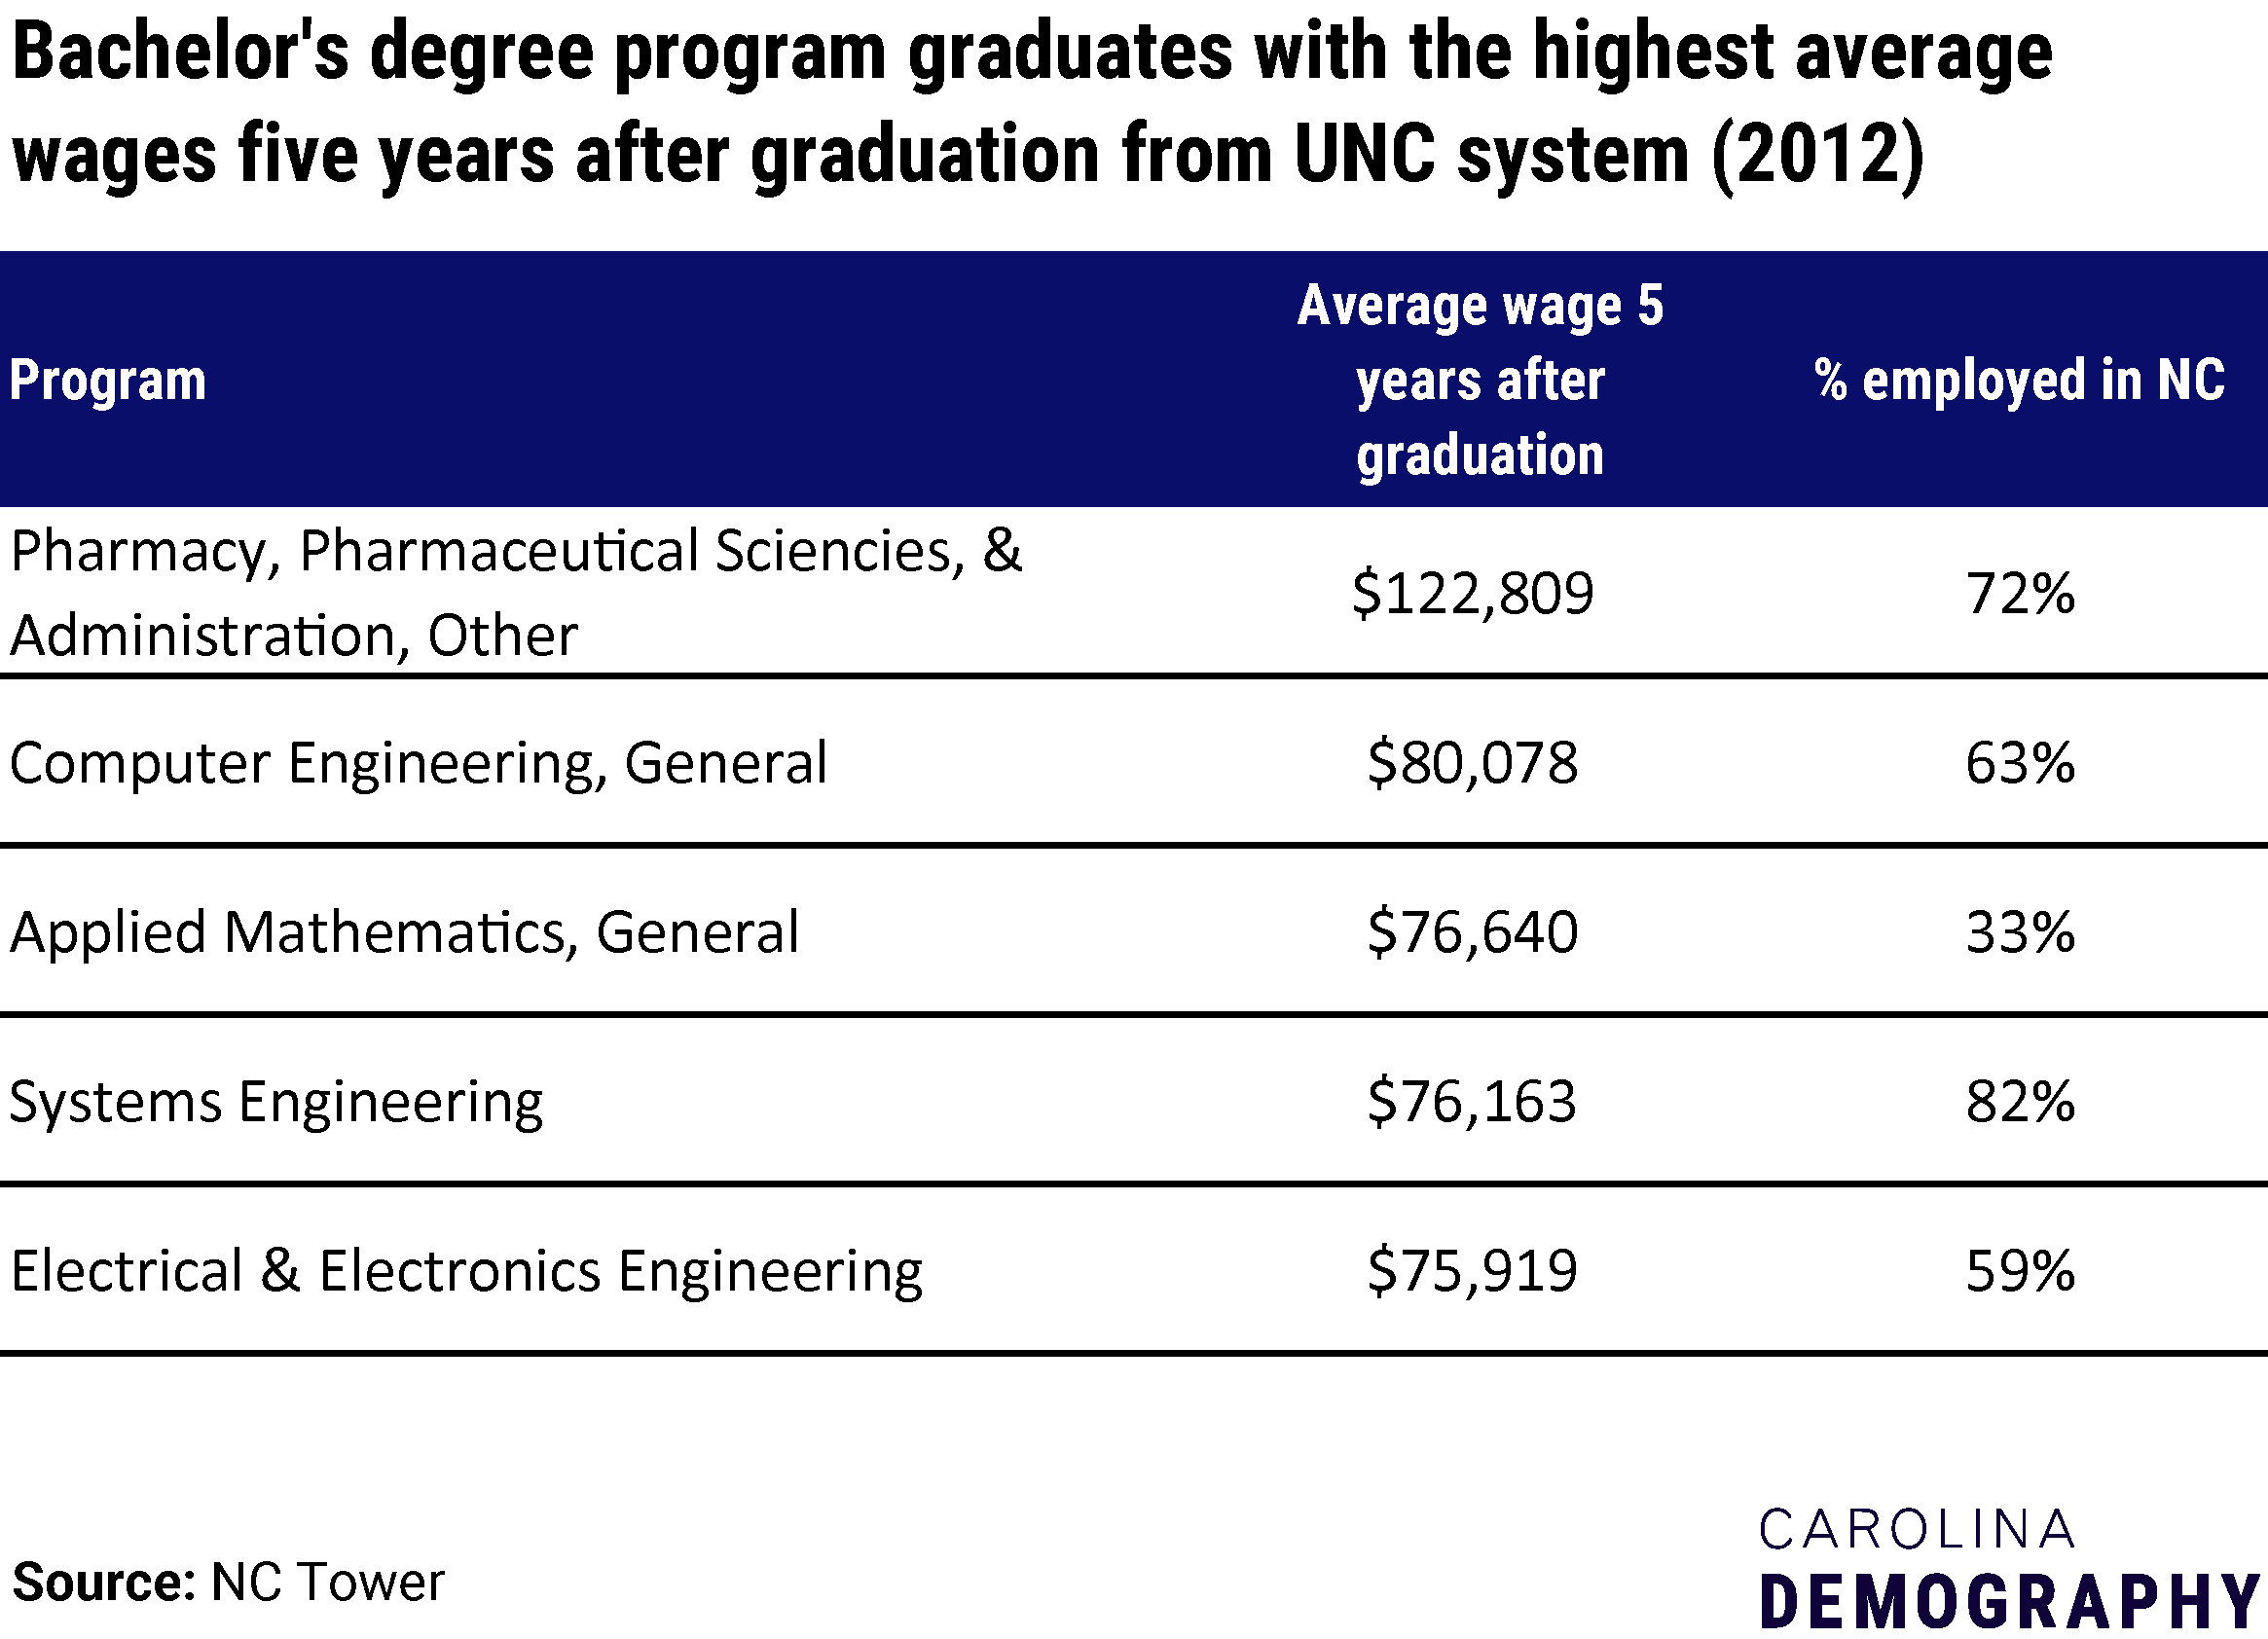 Bachelor's degree program graduates with the highest average wages five years after graduation, UNC system schools (2012)